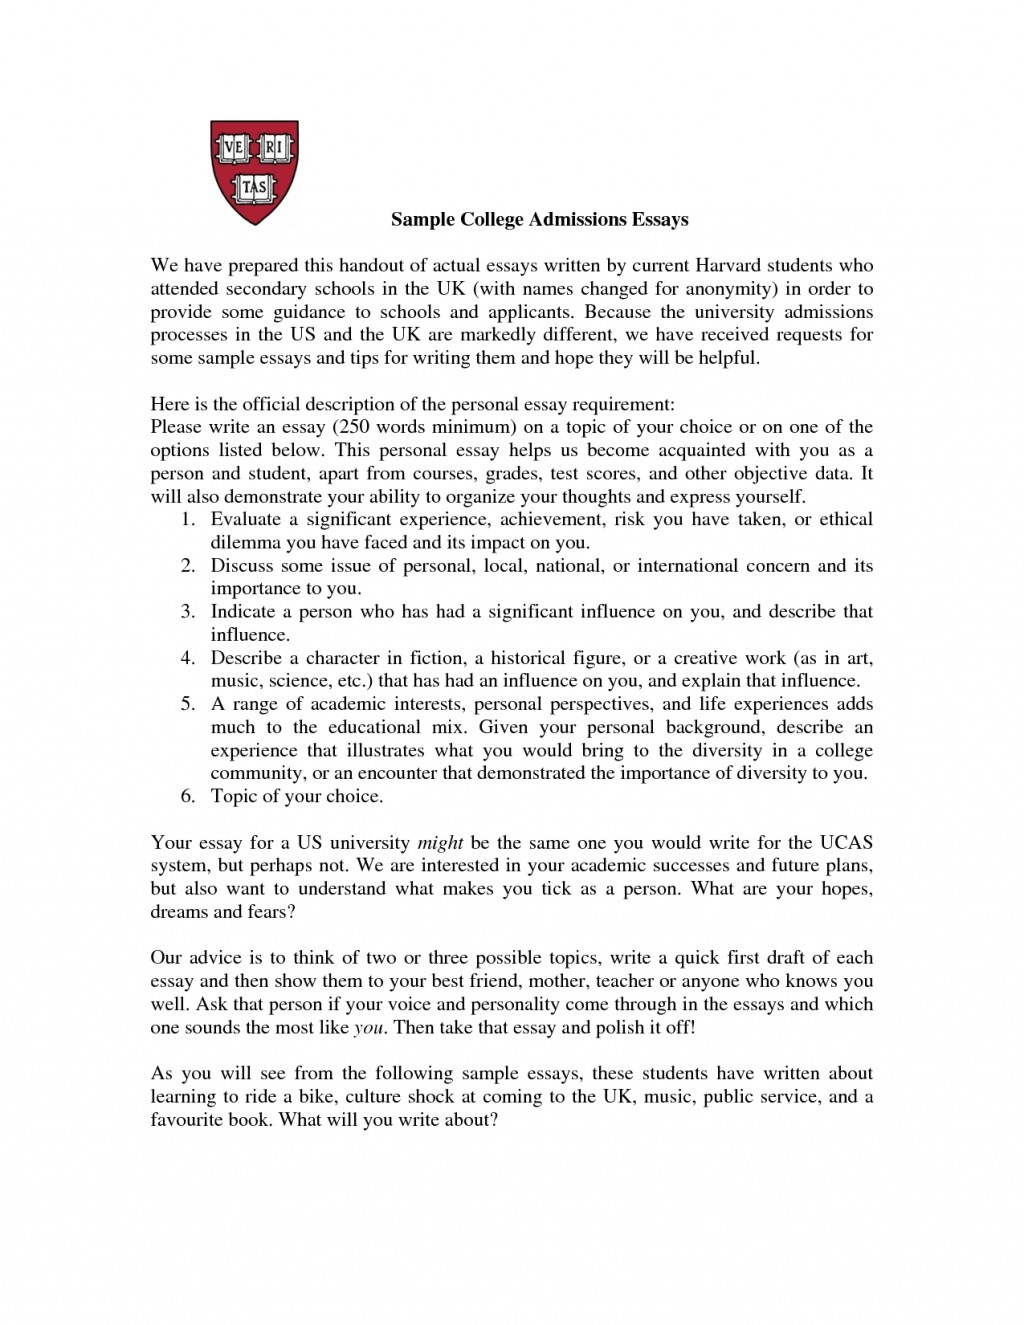 012 Essay Example College Essays For High School Application Dnndmyfreeipme How To Write Examples Of Admissions Format Acur Lunamedia Co Througho Admission Questions About Frightening Bad Worst Reddit Funny Prompts Large